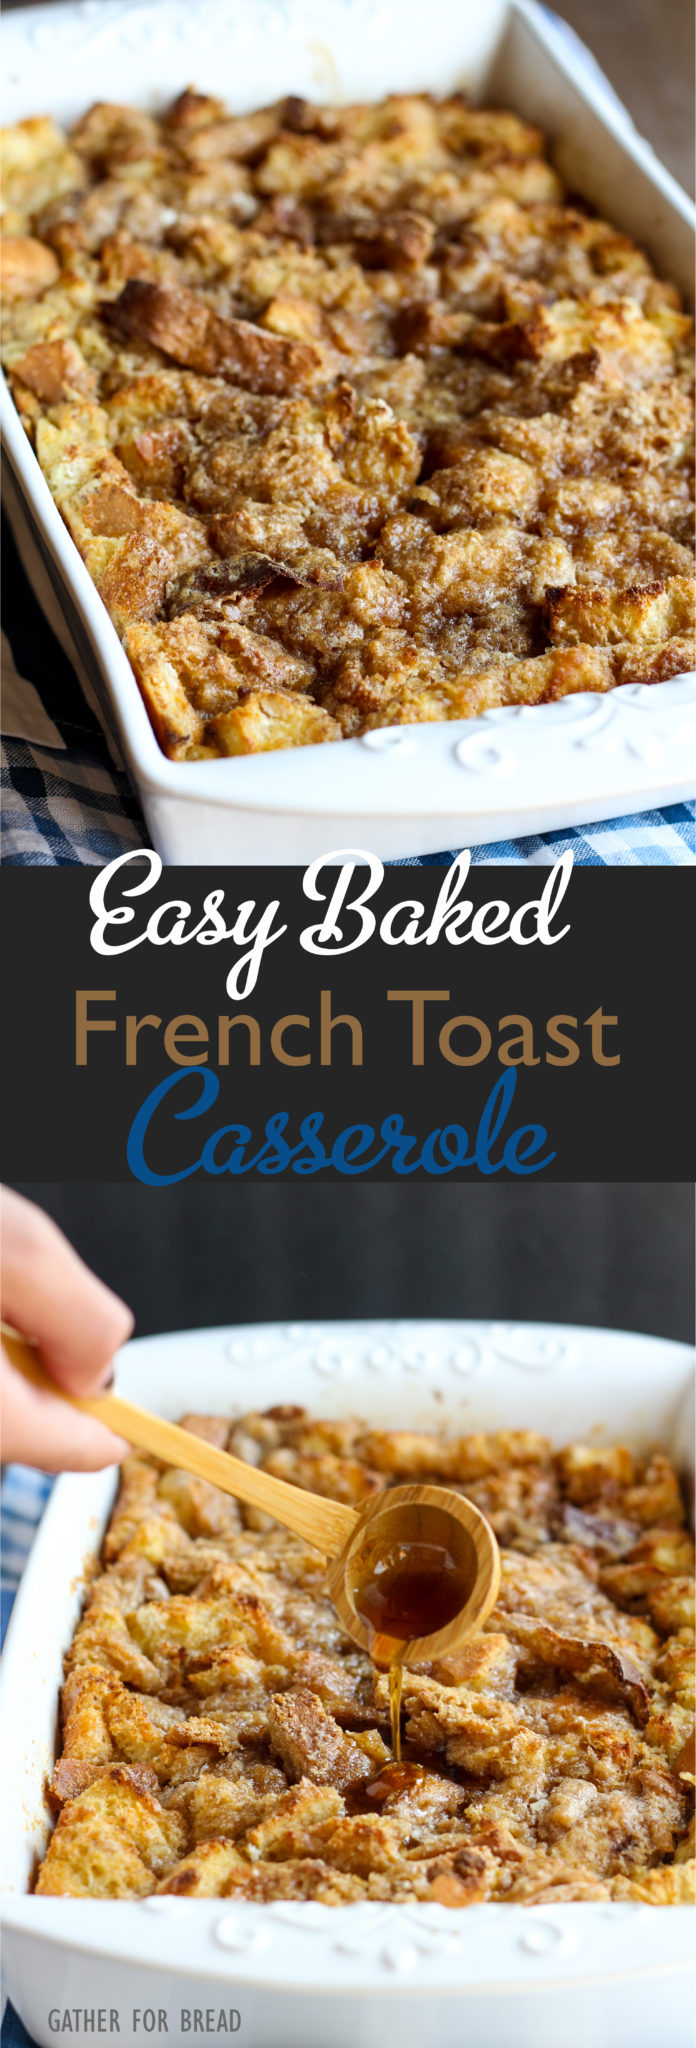 Easy Baked French Toast Casserole - Quick family favorite. Make the ...